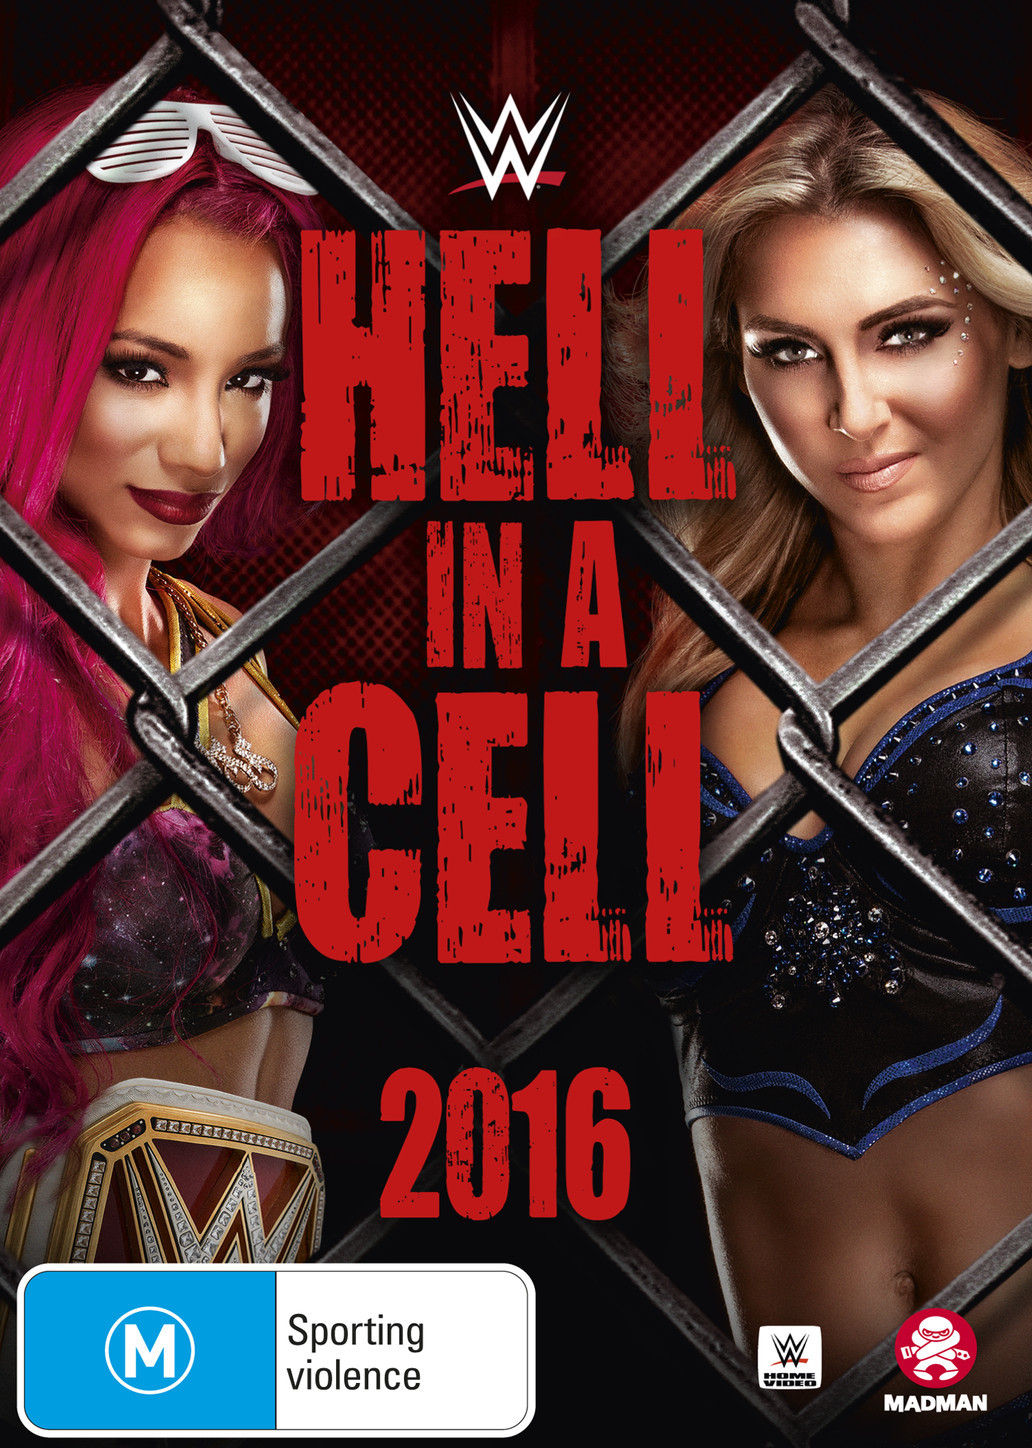 Wwe: Hell In A Cell - 2016 on DVD image